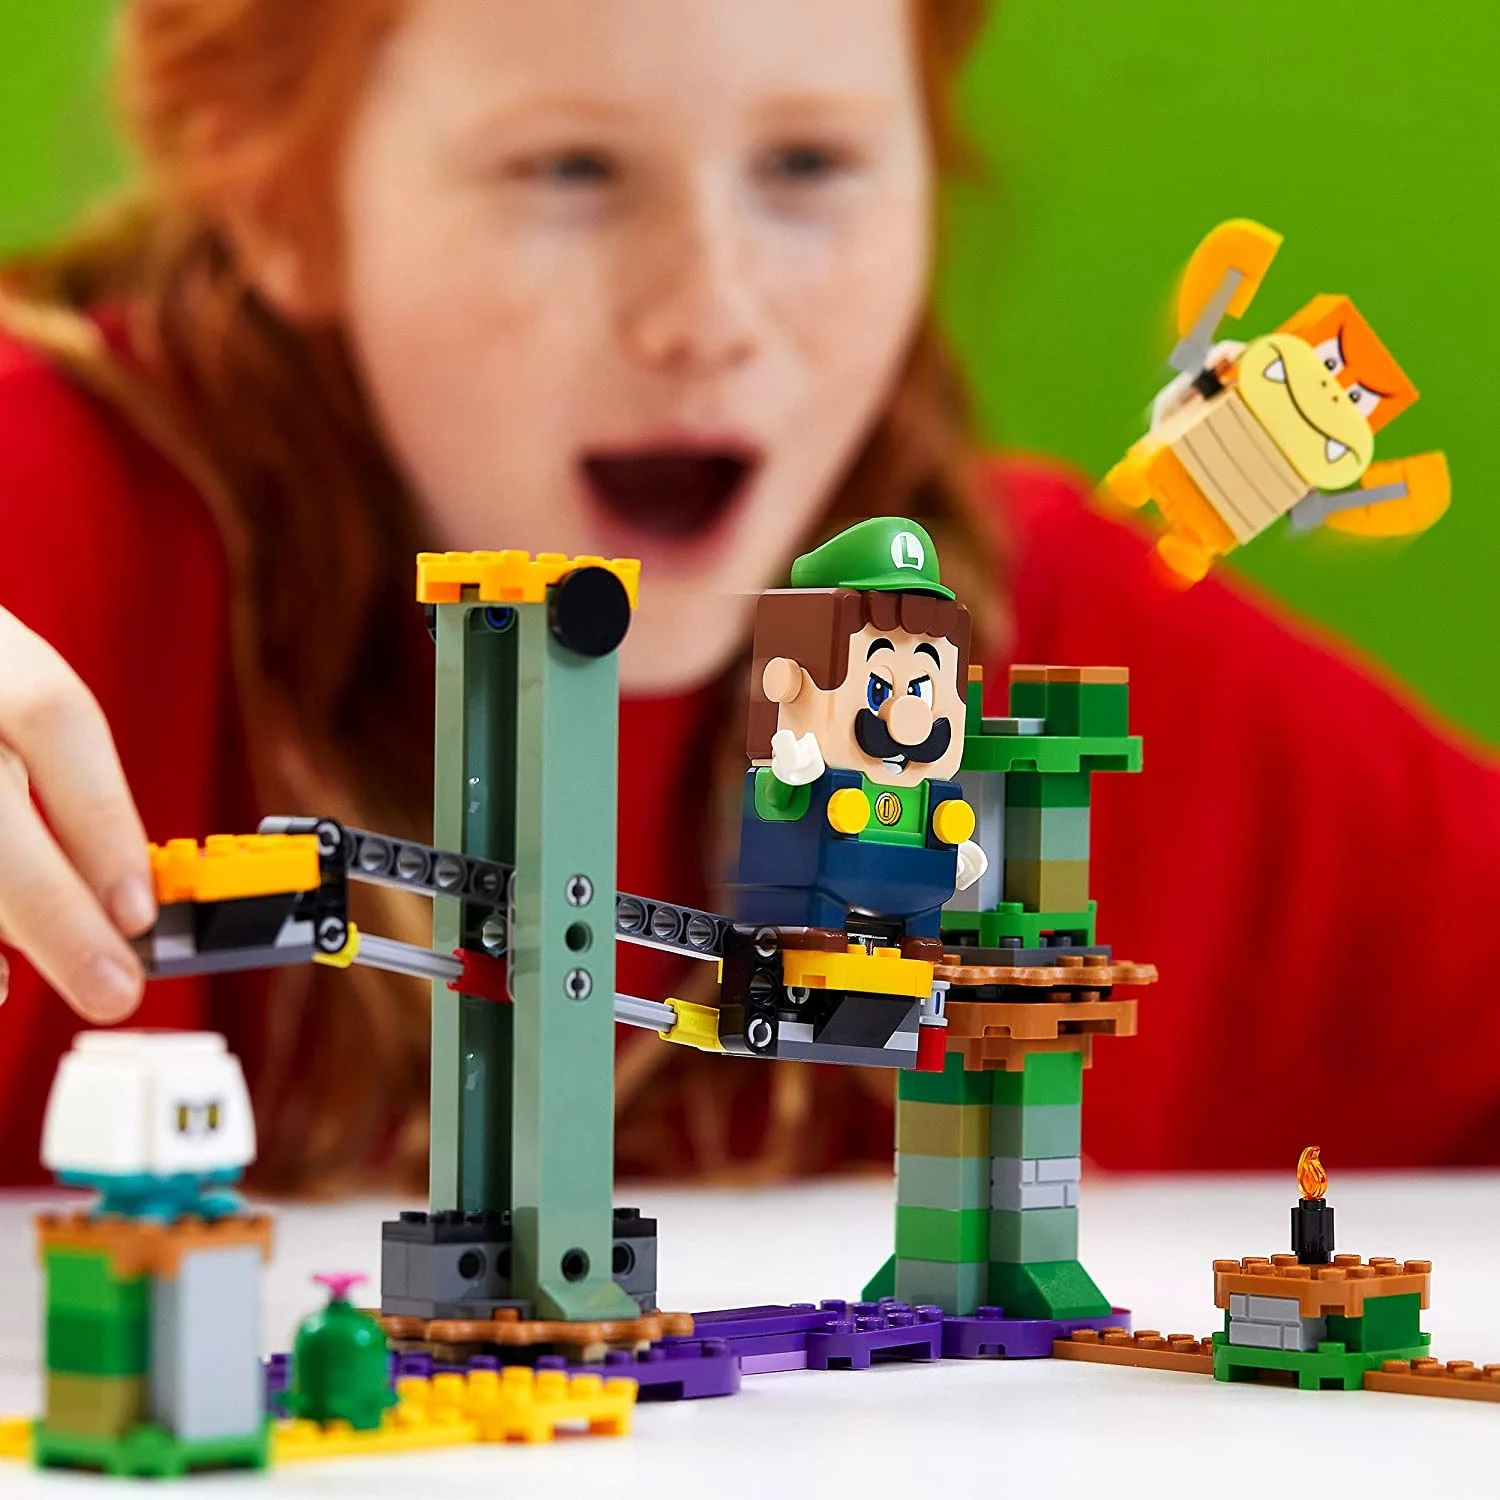 Nintendo: New Lego set with Luigi appeared